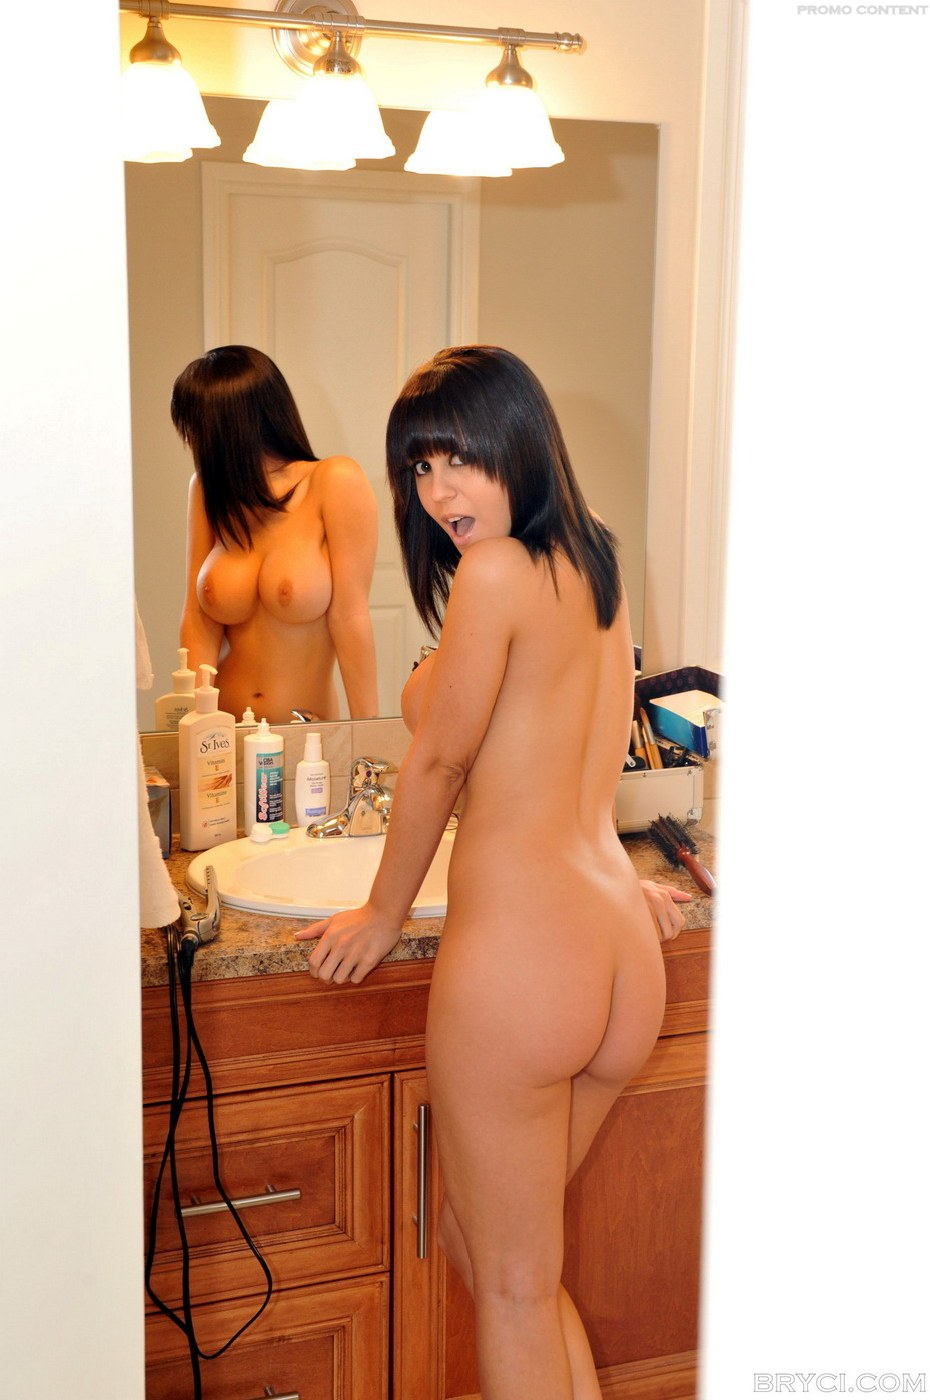 Naked pictures of surprise women nude